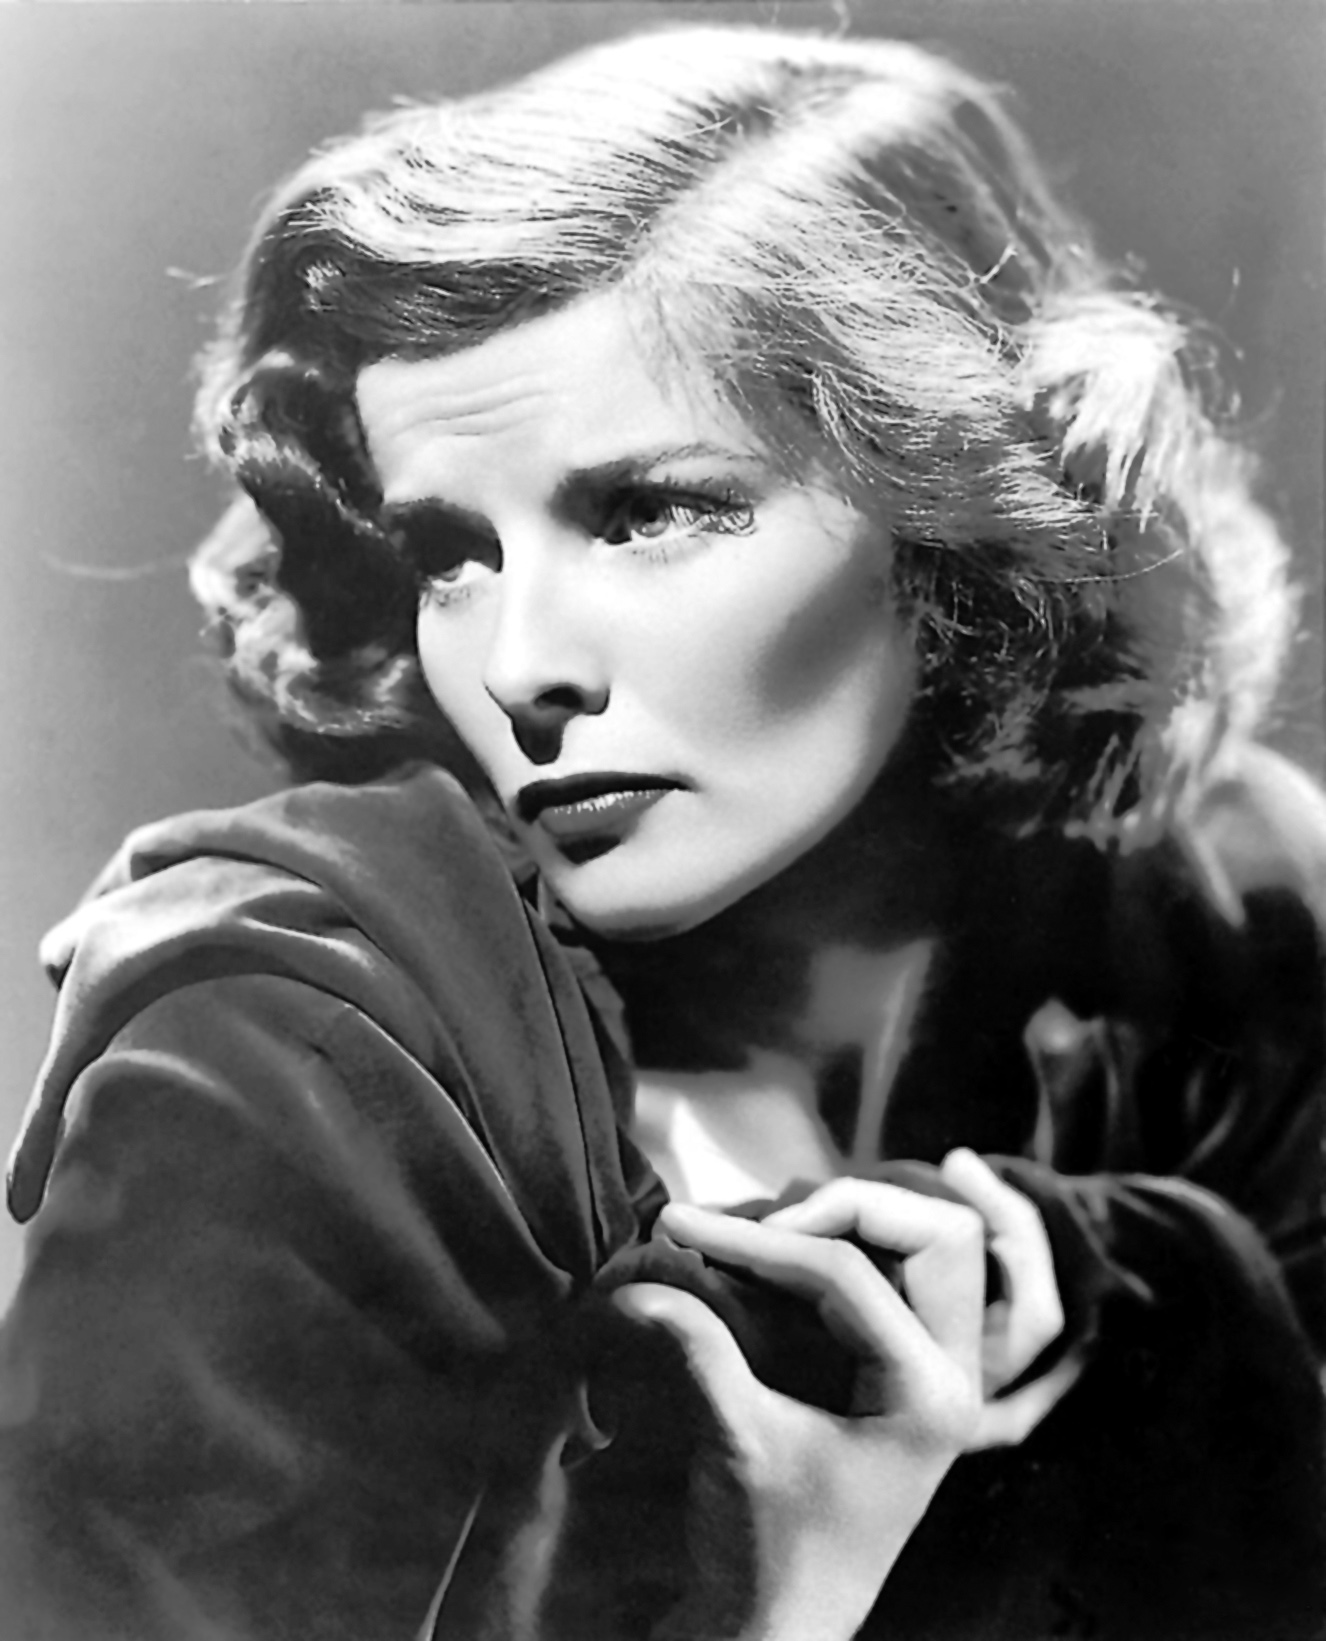 katharine hepburn nowkatharine hepburn style, katharine hepburn me, katharine hepburn quotes, katharine hepburn vk, katharine hepburn oscars, katharine hepburn now, katharine hepburn photo, katharine hepburn feminist, katharine hepburn and humphrey bogart, katharine hepburn sweat, katharine hepburn autobiography, katharine hepburn movies, katharine hepburn letter to spencer tracy, katharine hepburn vivien leigh, katharine hepburn talking, katharine hepburn movies youtube, katharine hepburn eye color, katharine hepburn natal chart, katharine hepburn wallpaper, katharine hepburn last photo